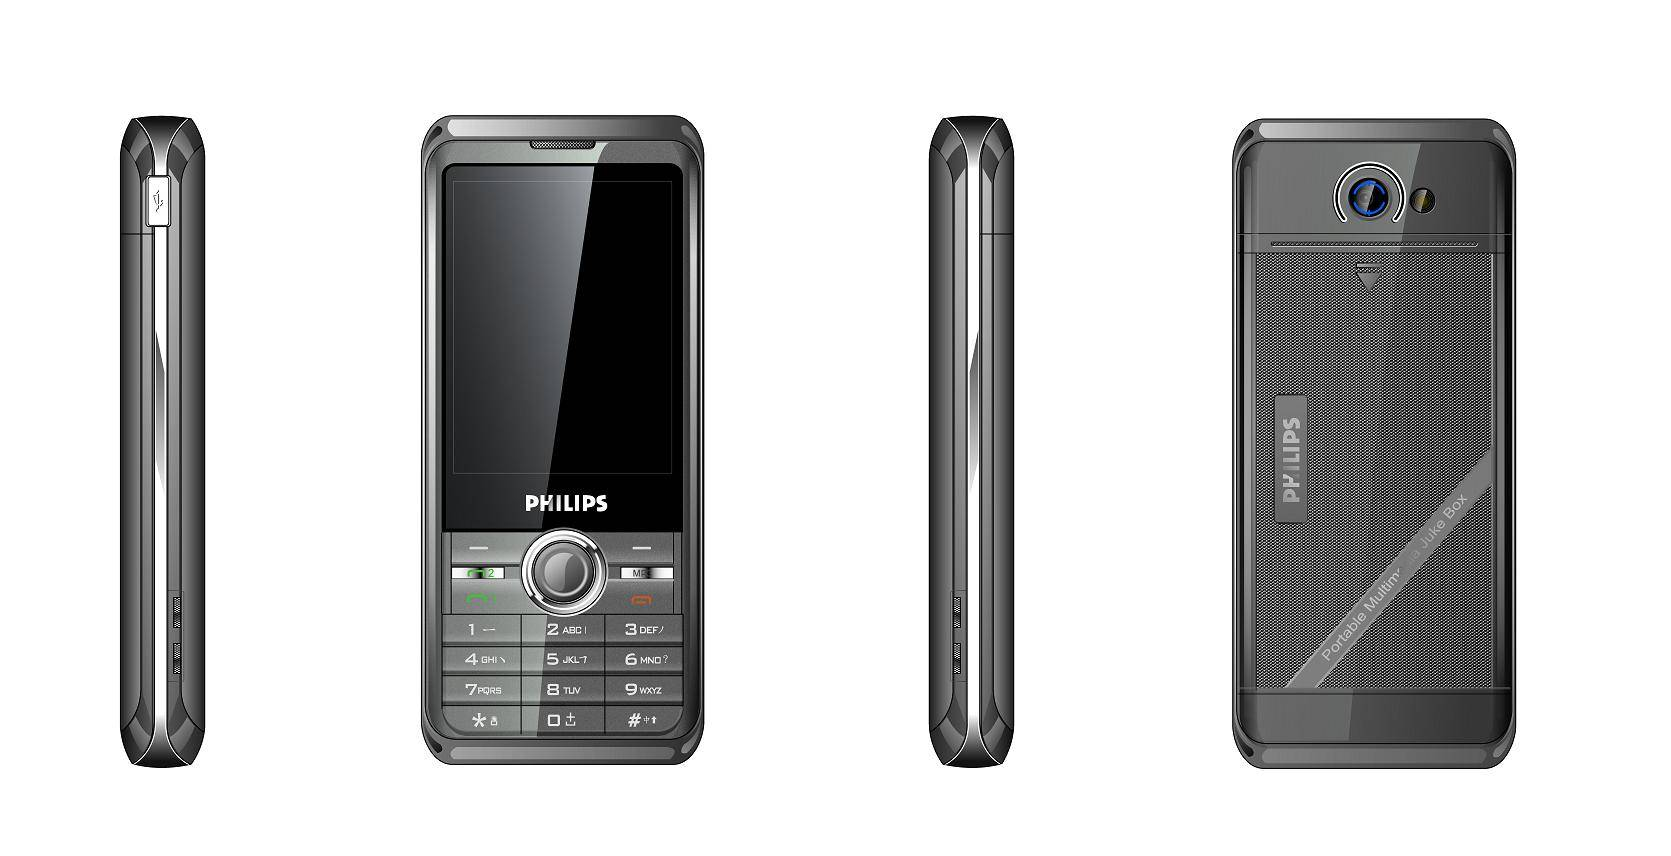 NEW ARRIVAL 8825 wholesale PHILIPS DUAL SIM SUPPORT T CARD 4GB TOUCHSCREEN BLUETOOTH MONILE PHONE